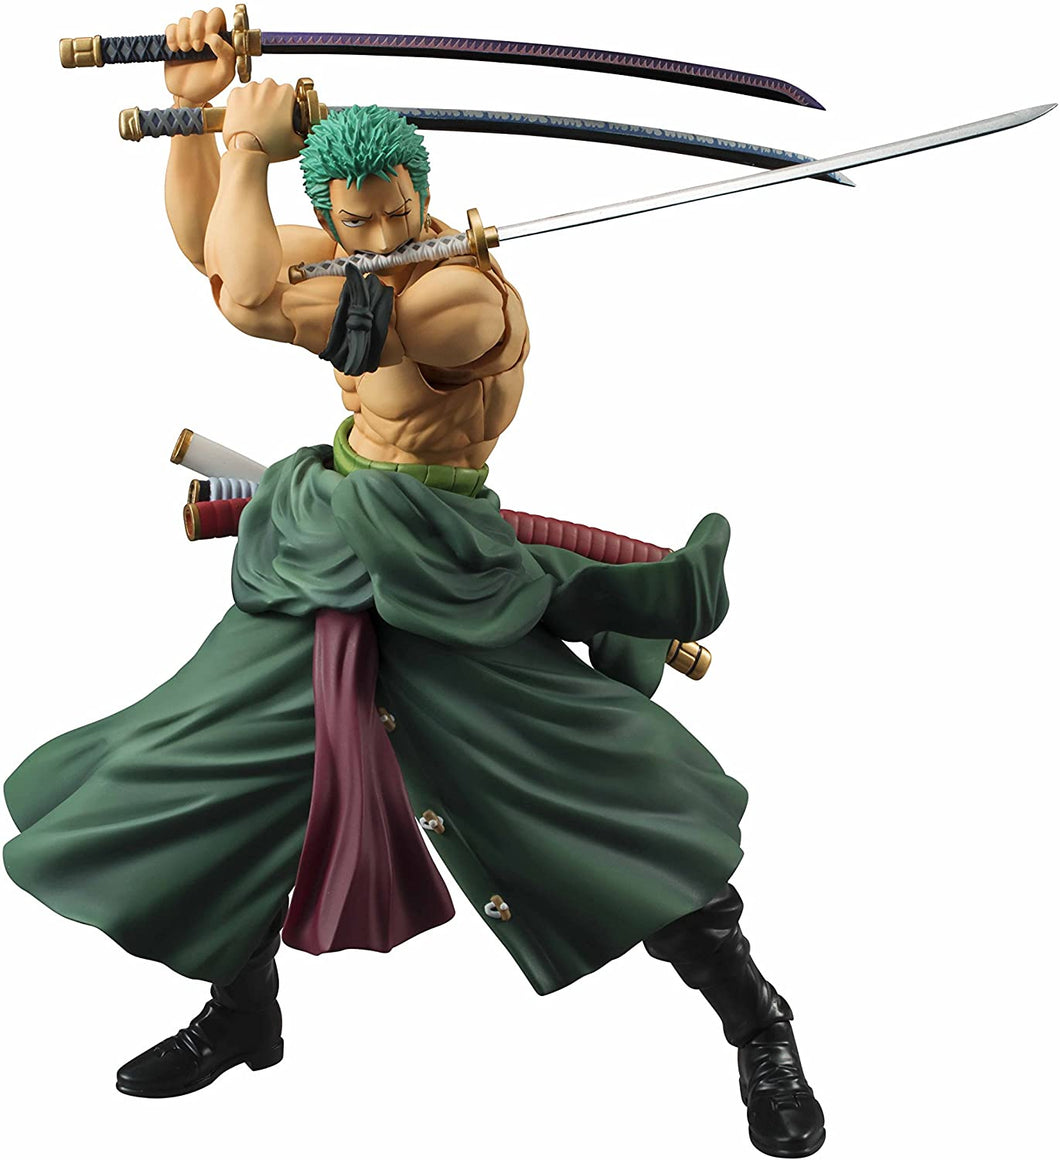 One Piece Anime Figure - Best Once Piece Anime Action Figure in Online